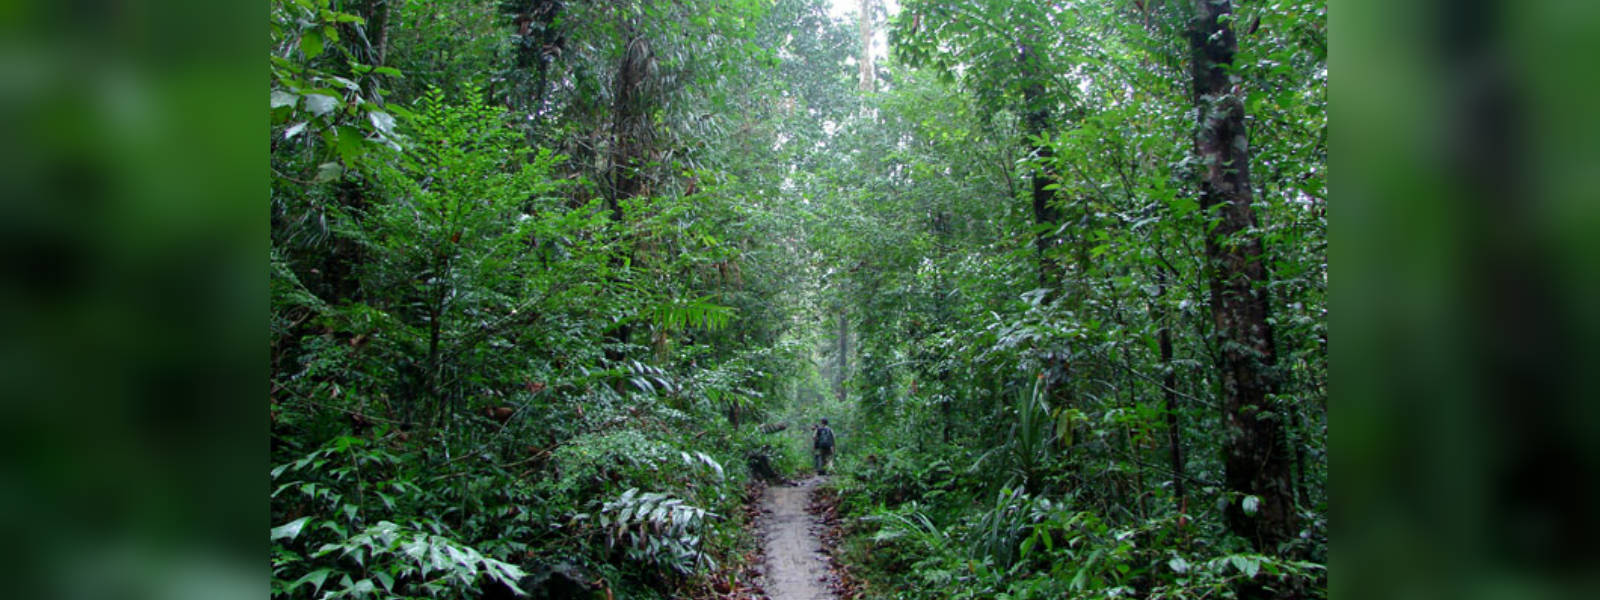 Forest cover goal of 32% : 90,000 hectares allocated for re-forestation